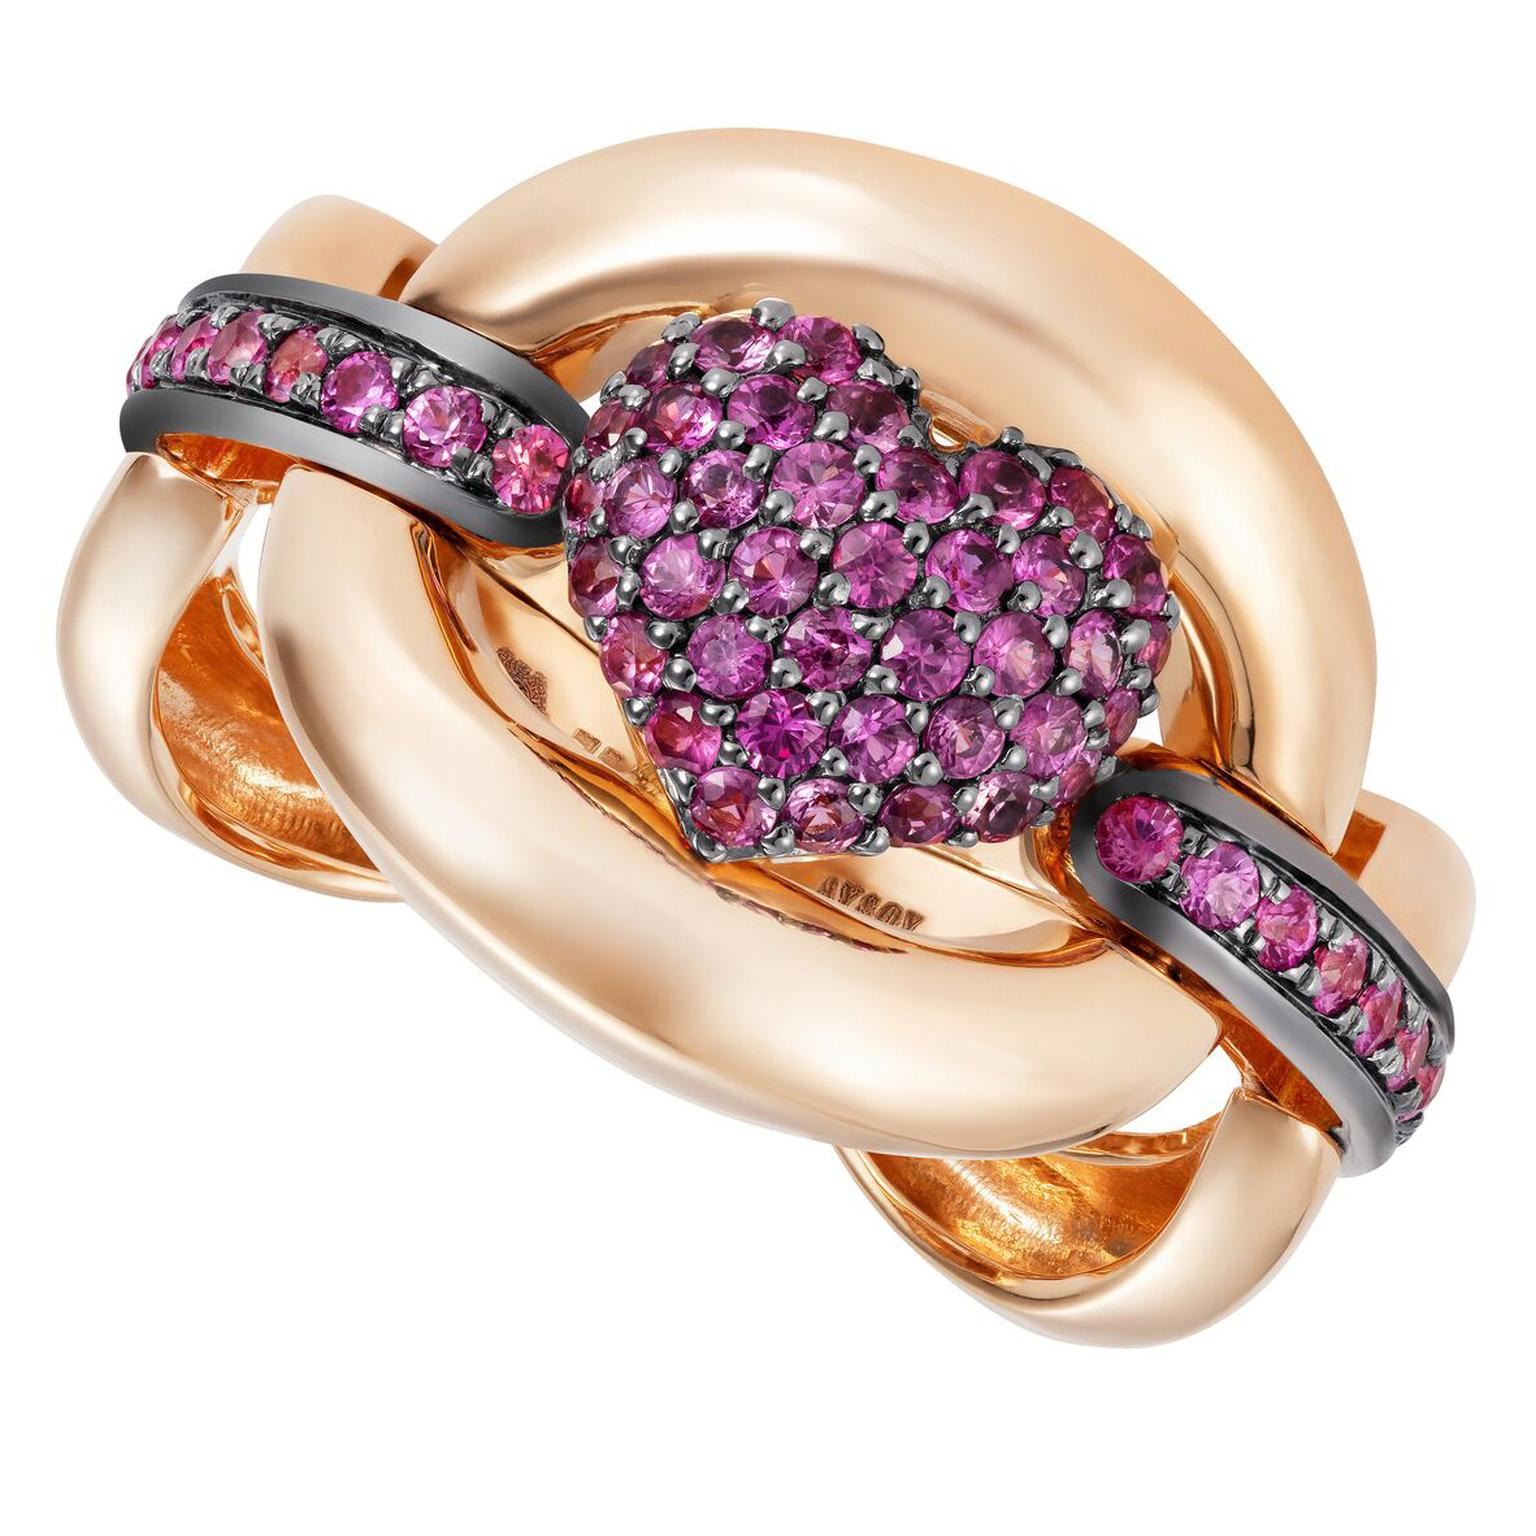 NAdine Aysoy RING HEART PINK SAPPHIRE, 18K Rose Gold (12.30g)  + Pink Sapphire Stone 0.85 CT, $4940